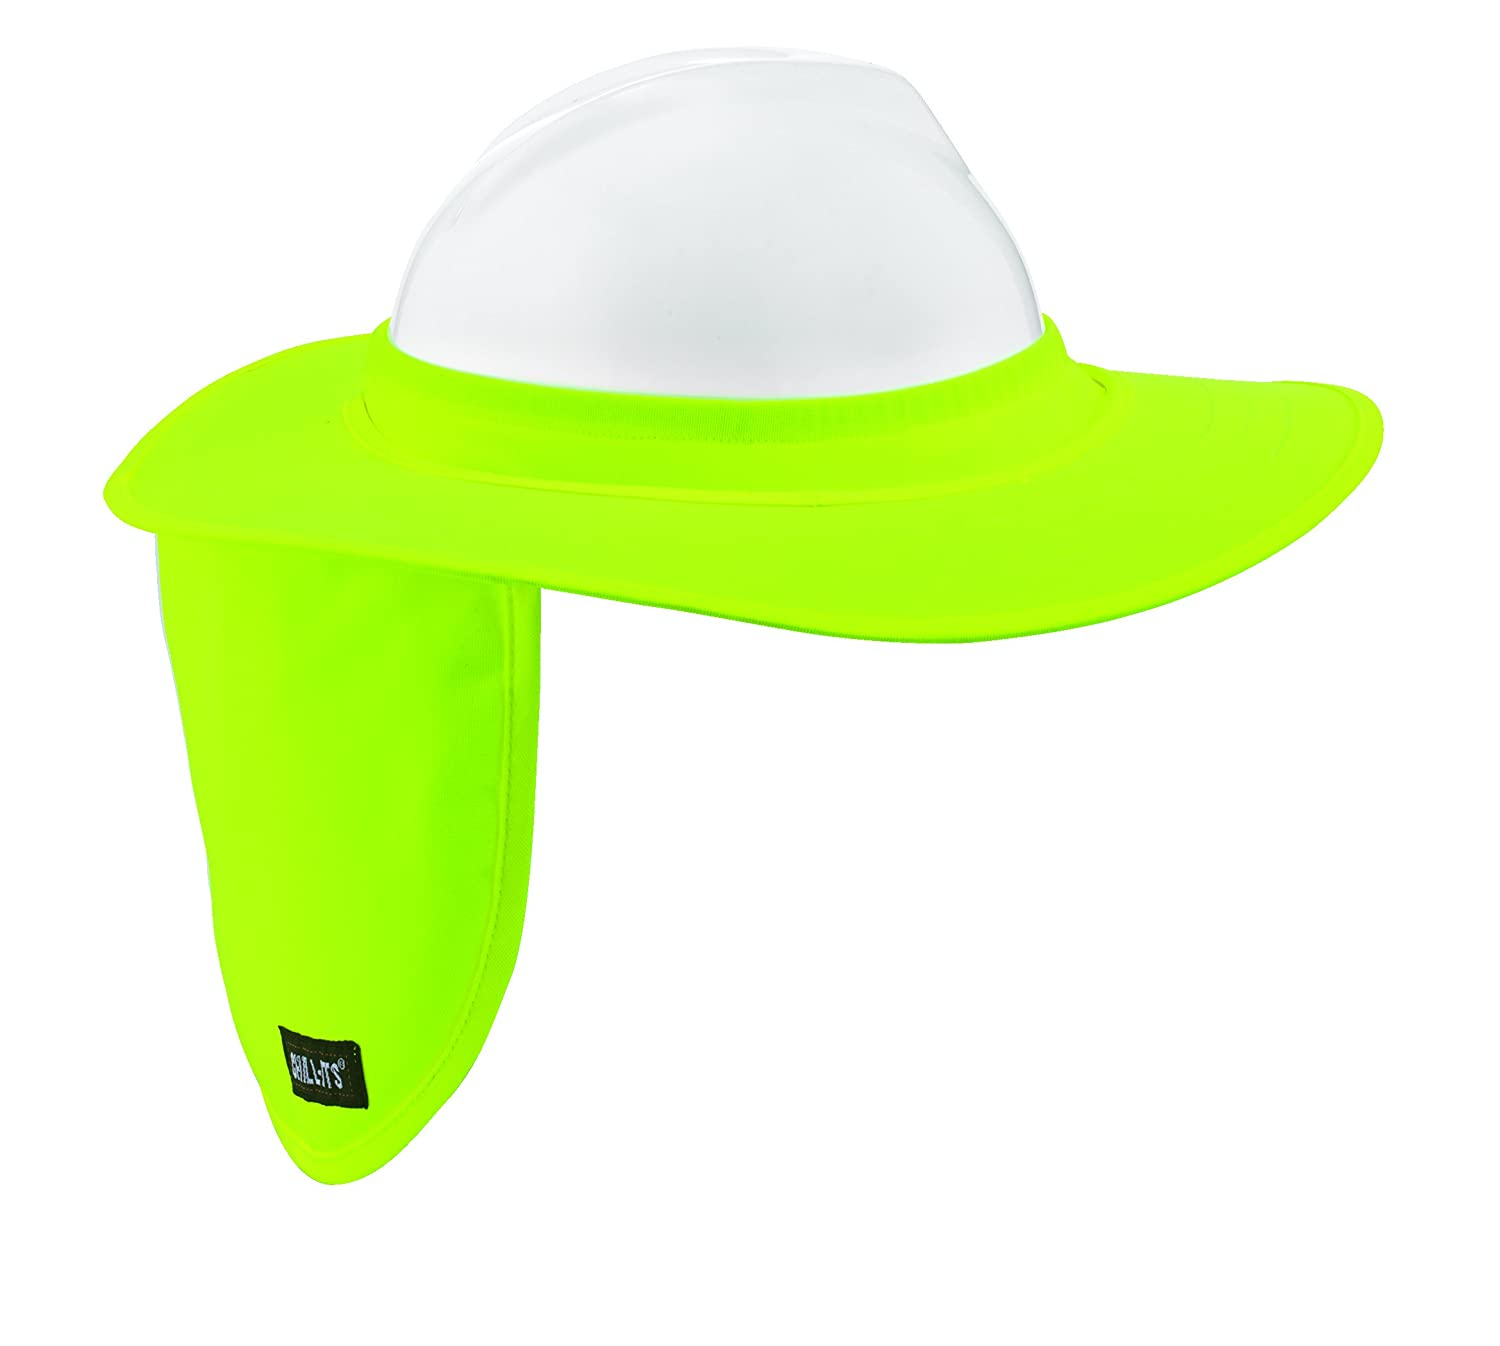 46a29acbefd Ergodyne Chill-Its 6660 Attachable Hard Hat Brim with Neck Shade ...